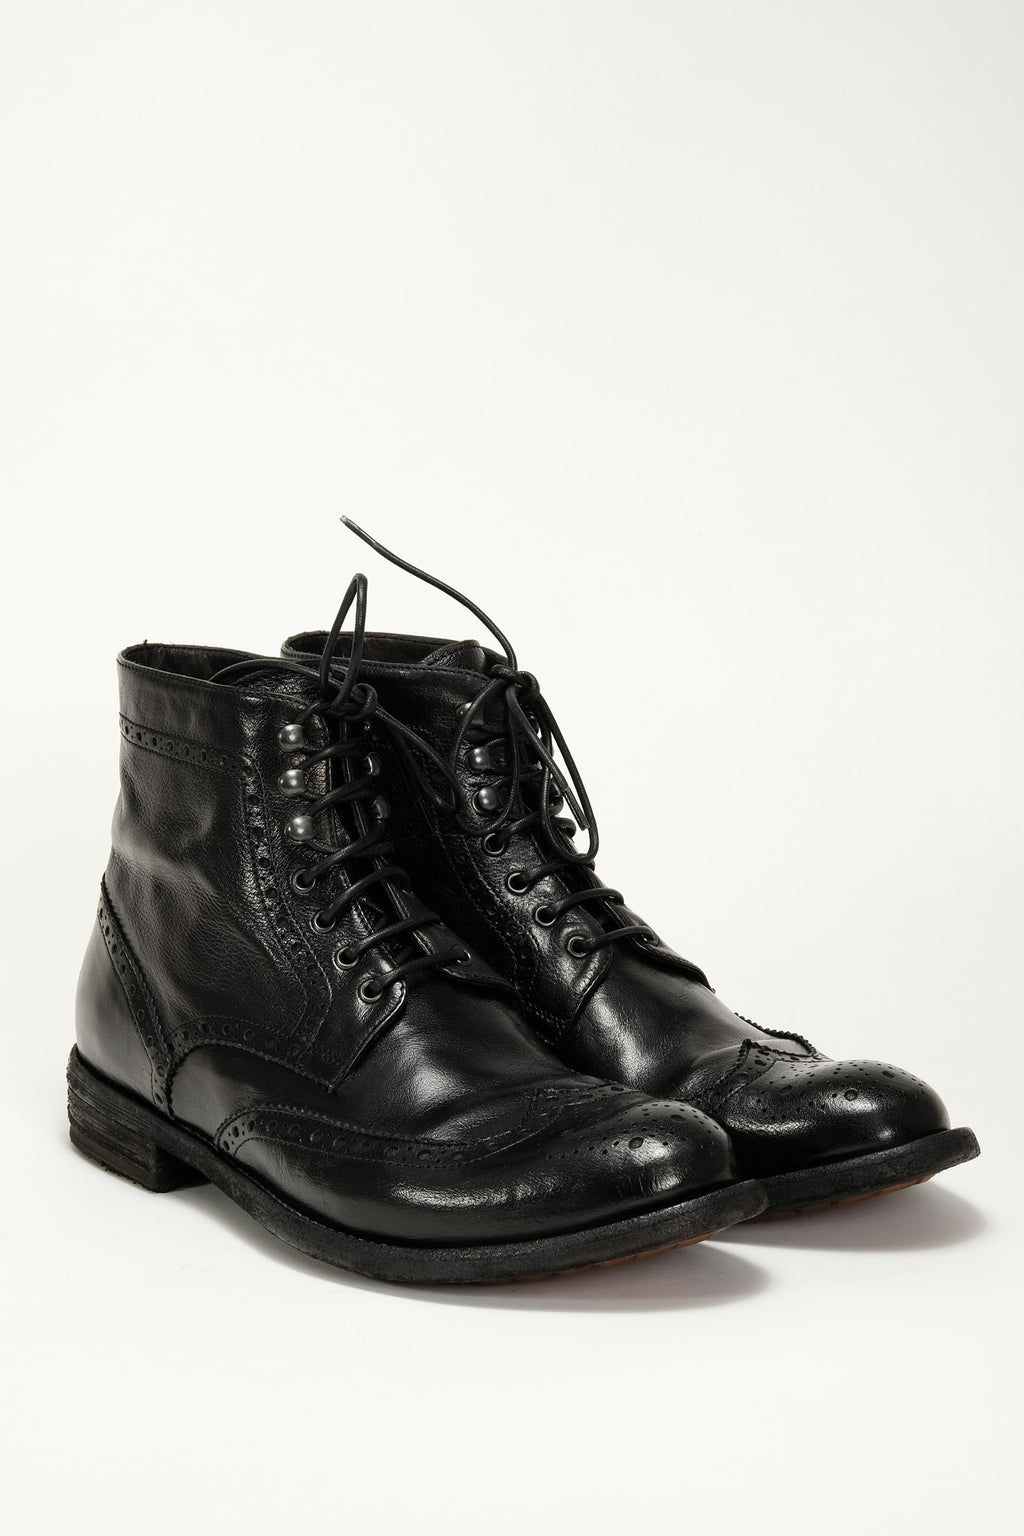 Officine Creative - Lace Up Boots 009